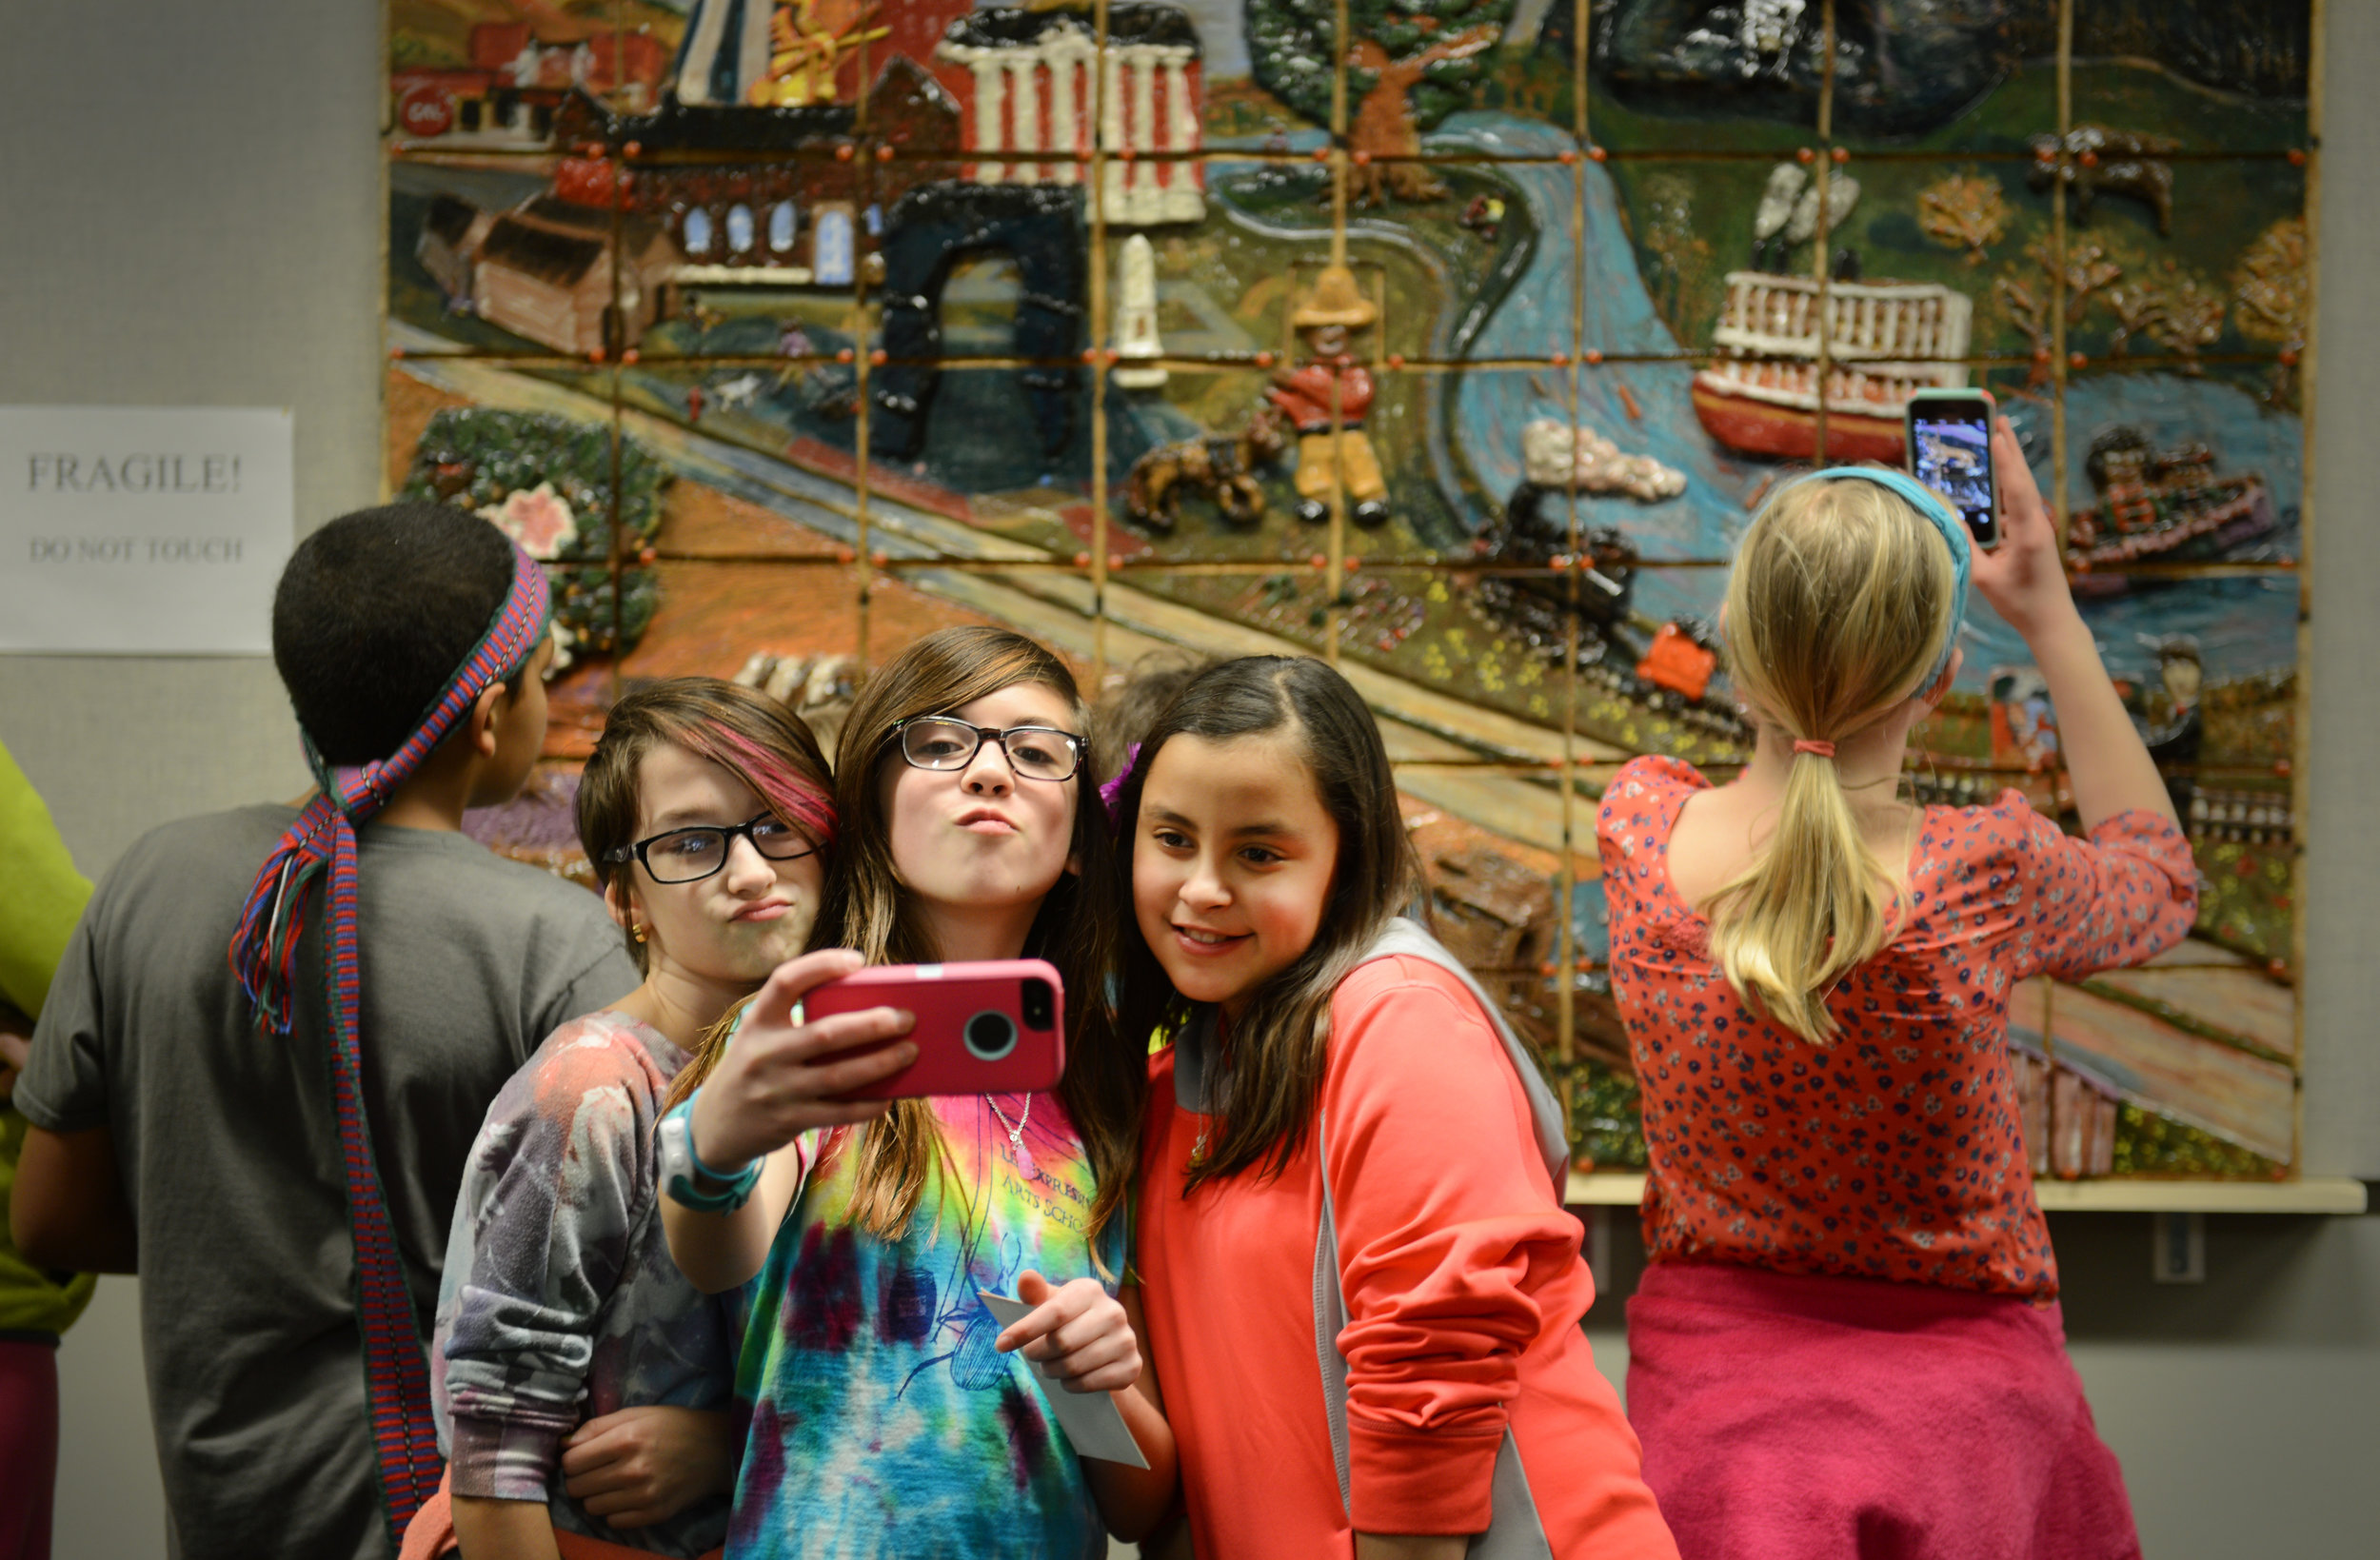 From left, Lee Expressive Arts Elementary students Devin Hall, 10, Ellie Bacon, 11, and Keya Beamer, 10, take a selfie in front of the mural they helped create on Tuesday, March 3, 2015, in Columbia, MO. The fifth grade class at the elementary school made the mural for the State Historical Society.